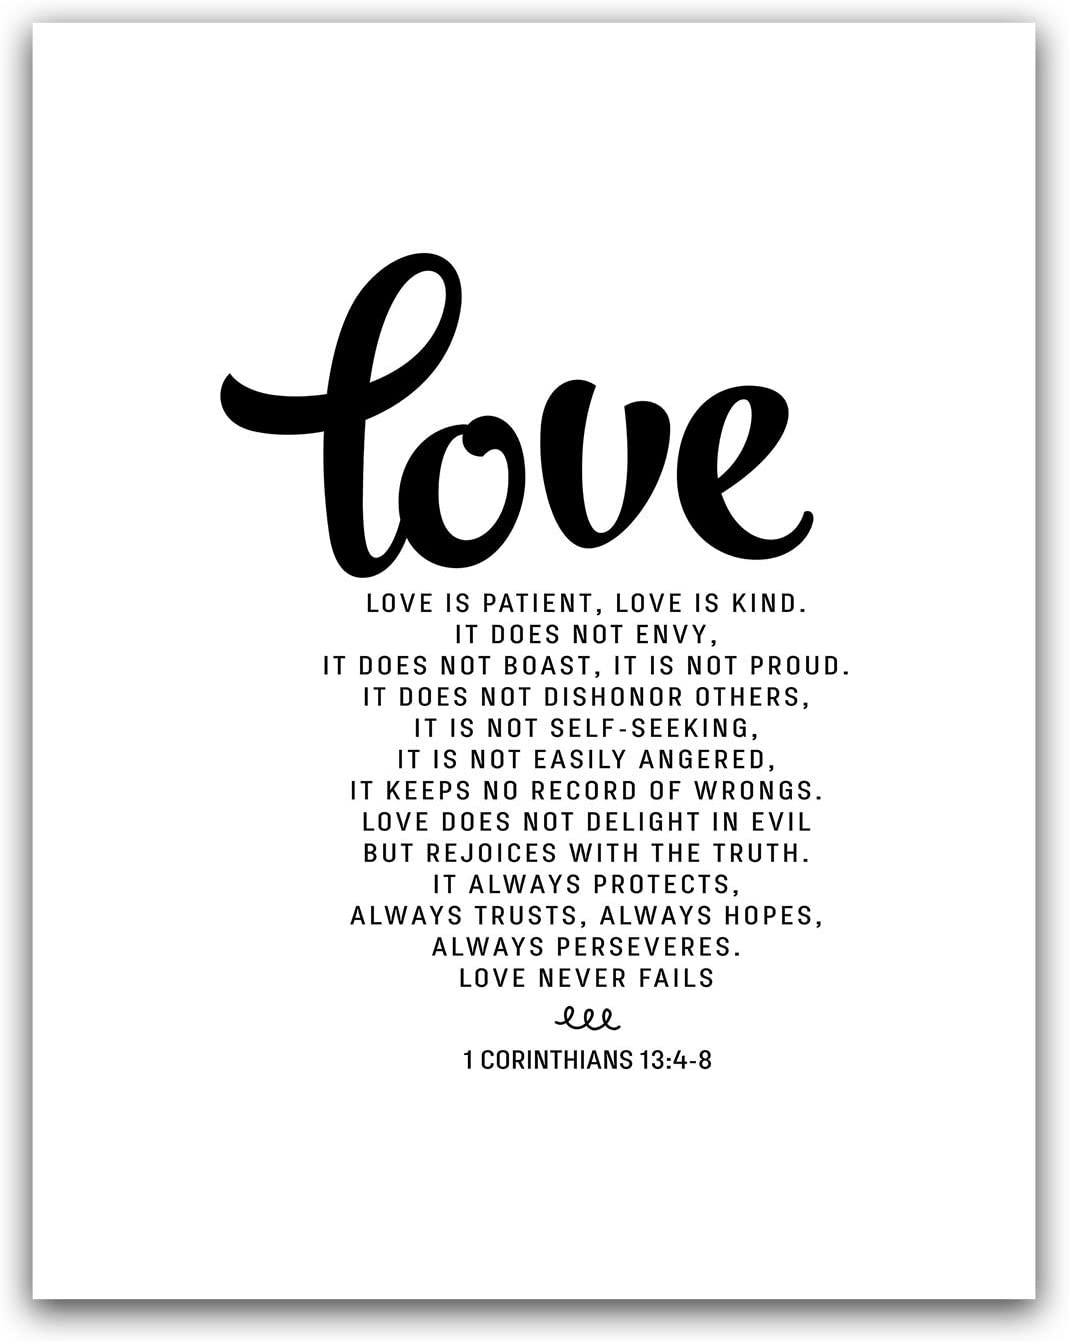 Love is Patient, Love is Kind, 1 Corinthians 13:4-8 Bible Verse Wall Art, Scripture Poster Decor, Christian Quote Gift, Religious Print Sign, Scandinavian Calligraphy Artwork, Big Nordic Home 11x14